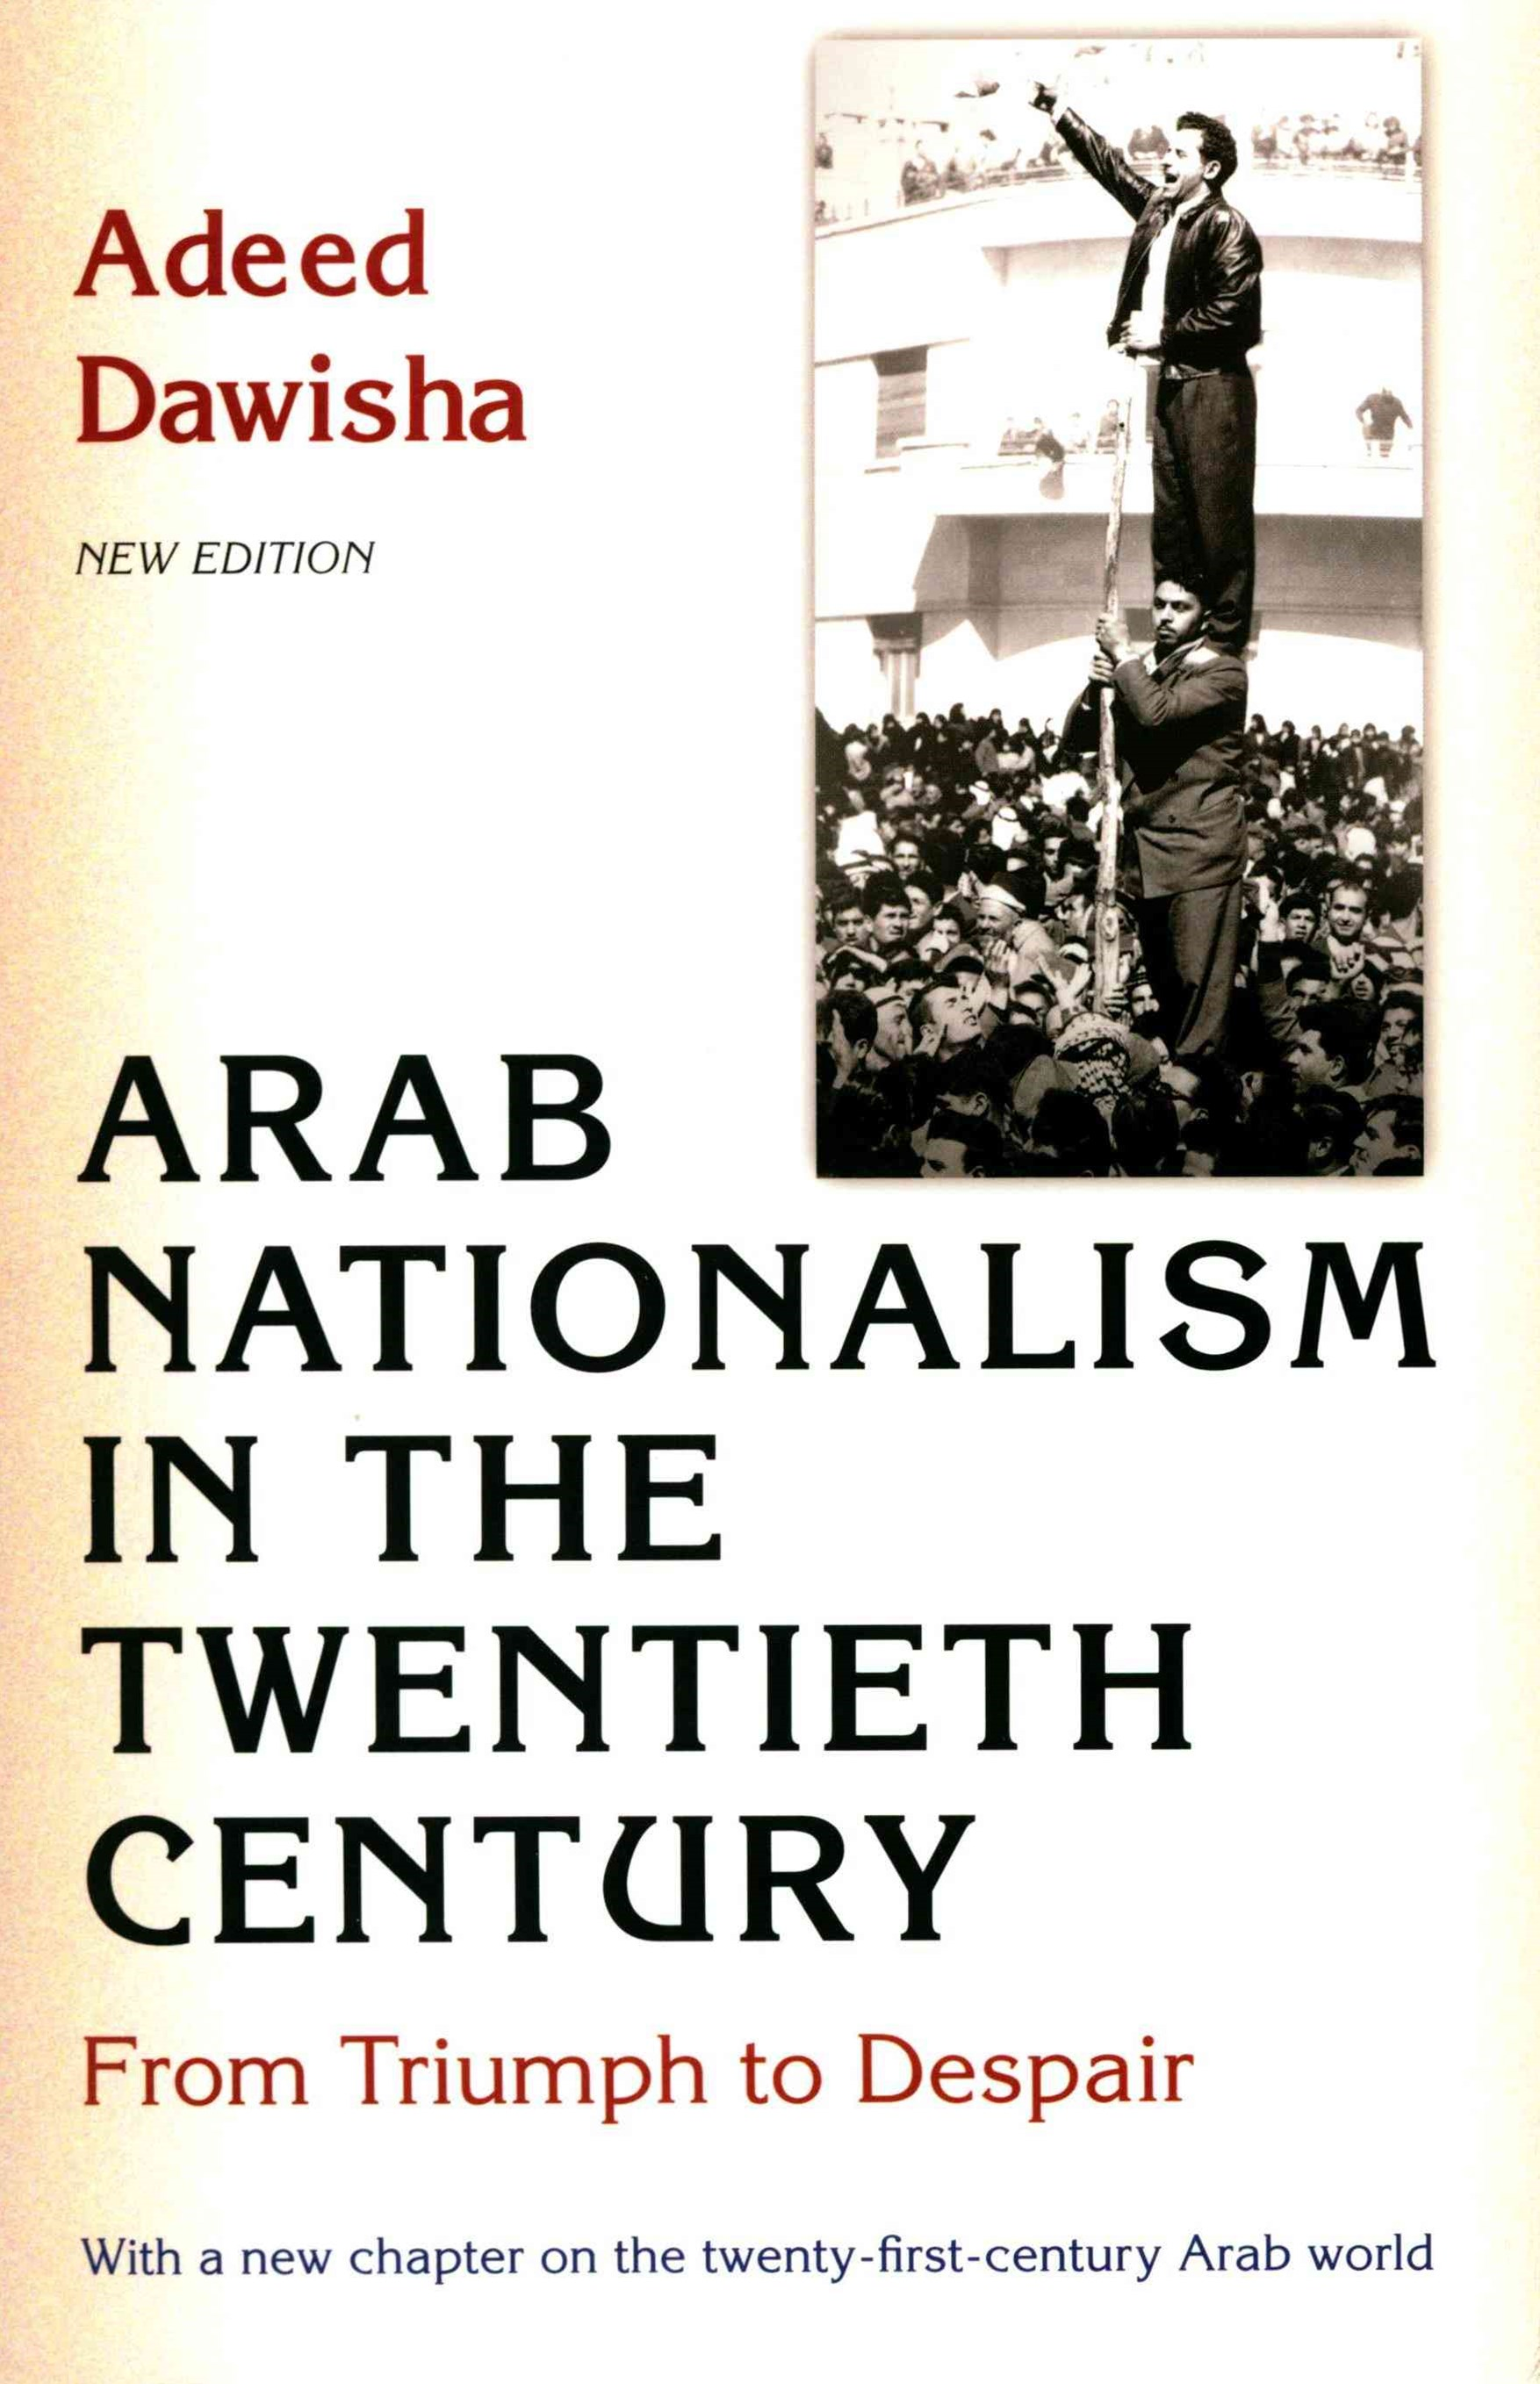 Arab Nationalism in the Twentieth Century